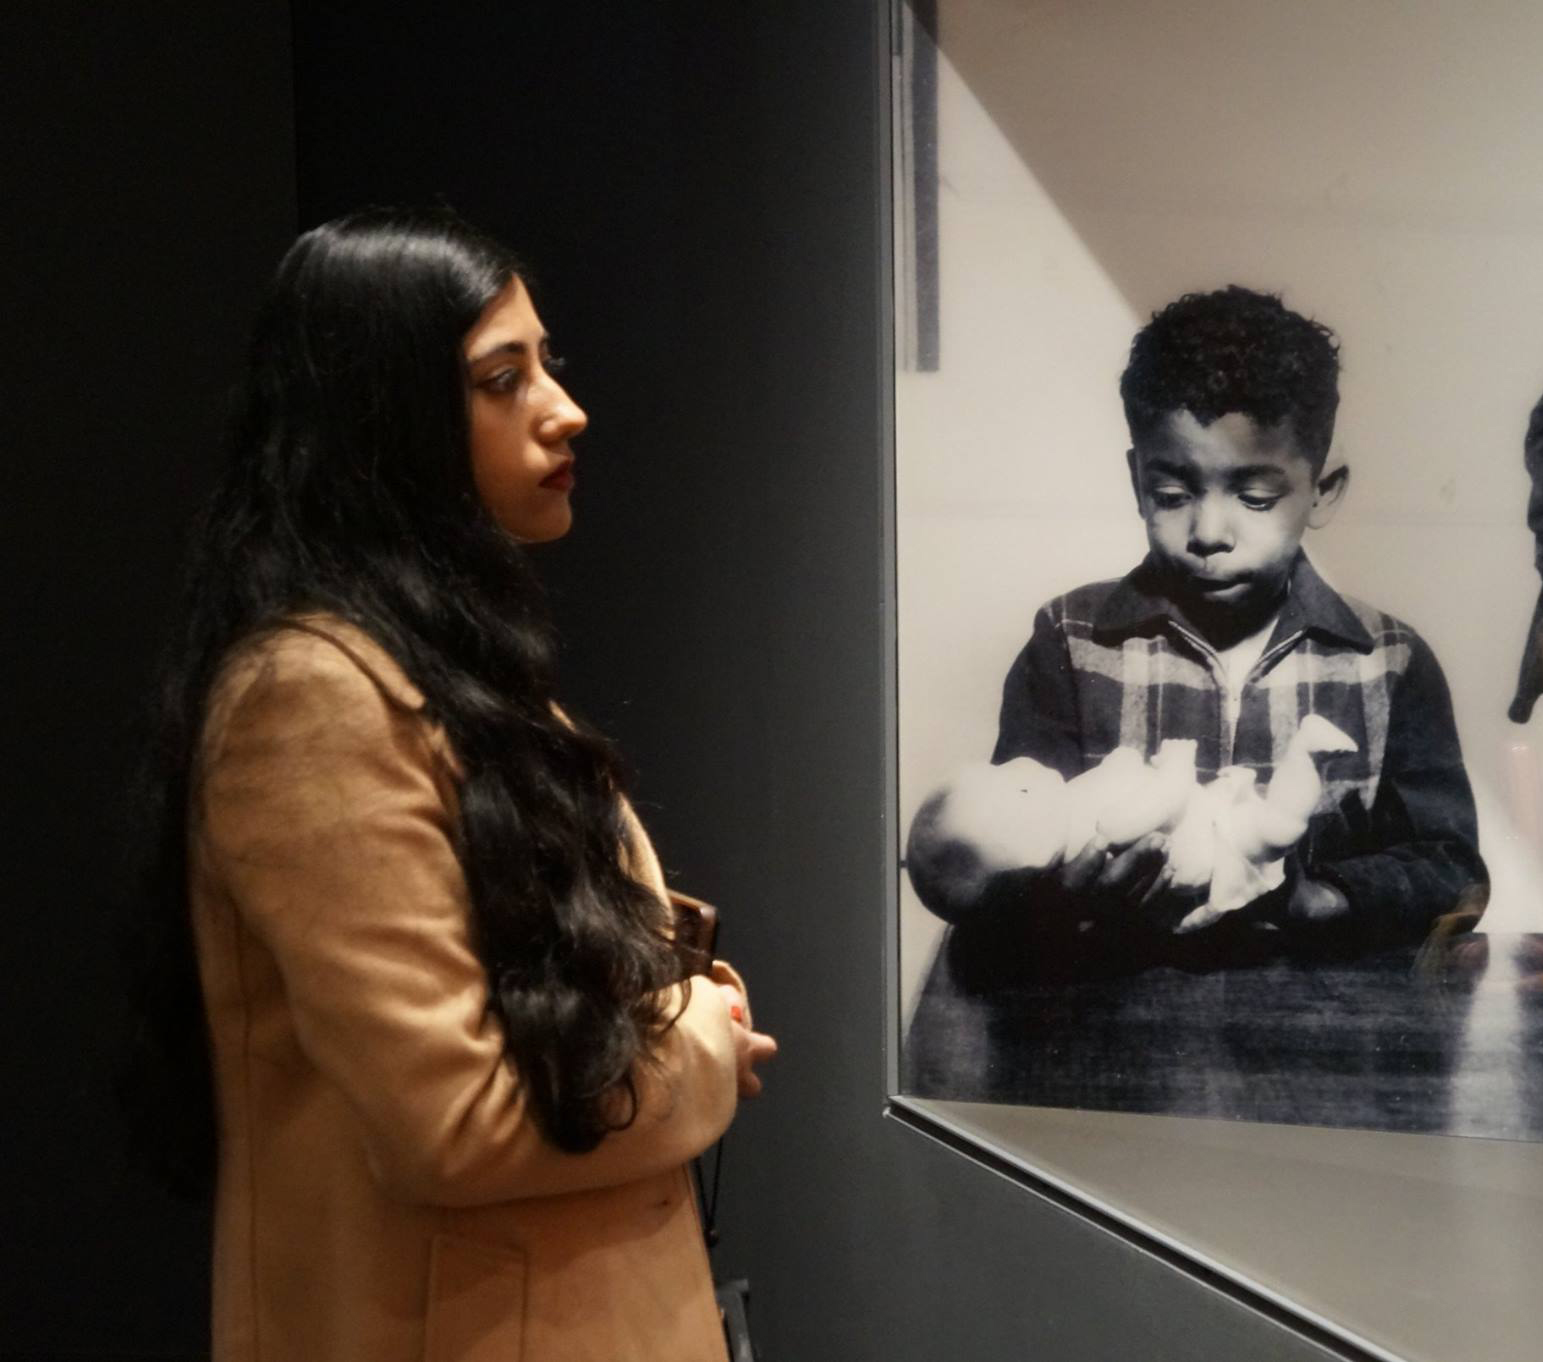 Student views an exhibit at the Civil Rights Museum in Memphis, Tennessee. Courtesy of UTSA SLC